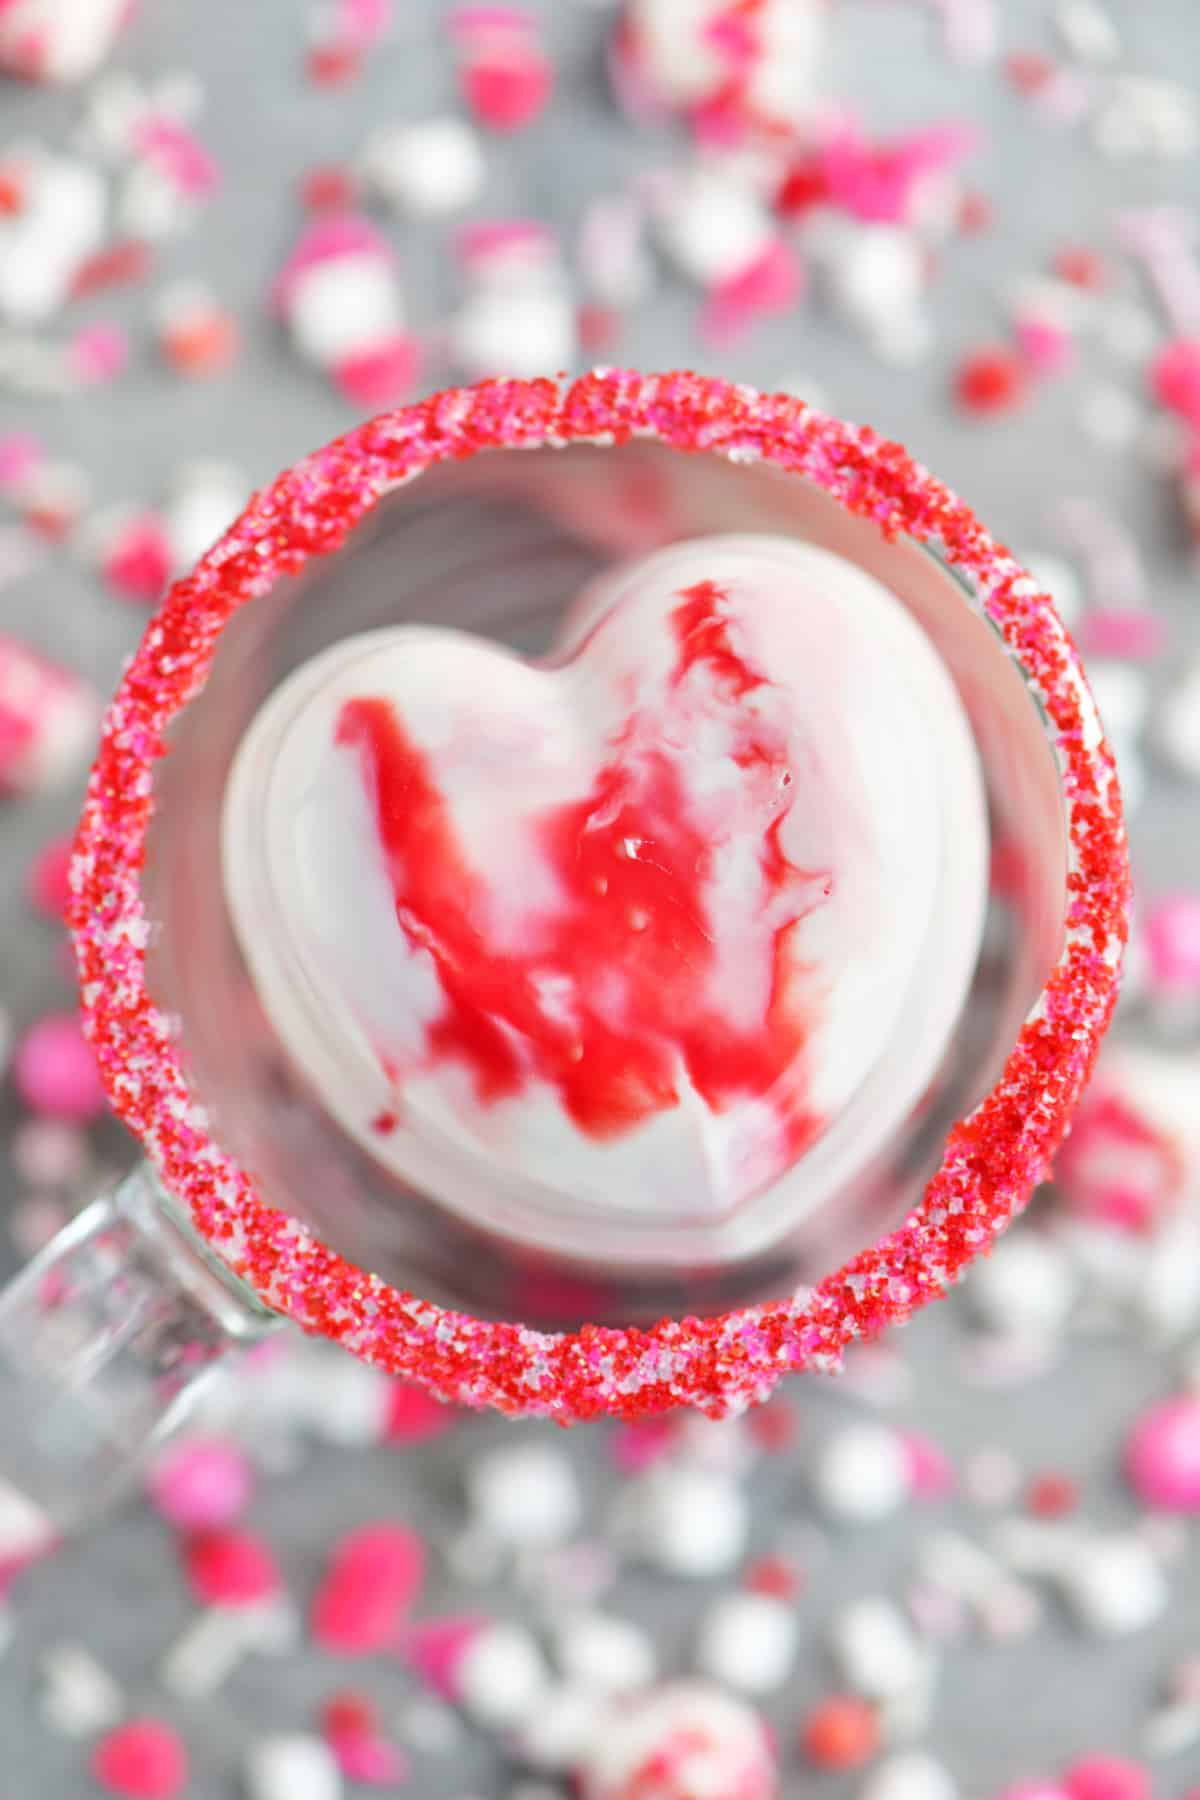 a heart shaped hot chocolate bomb in a cup of hot chocolate